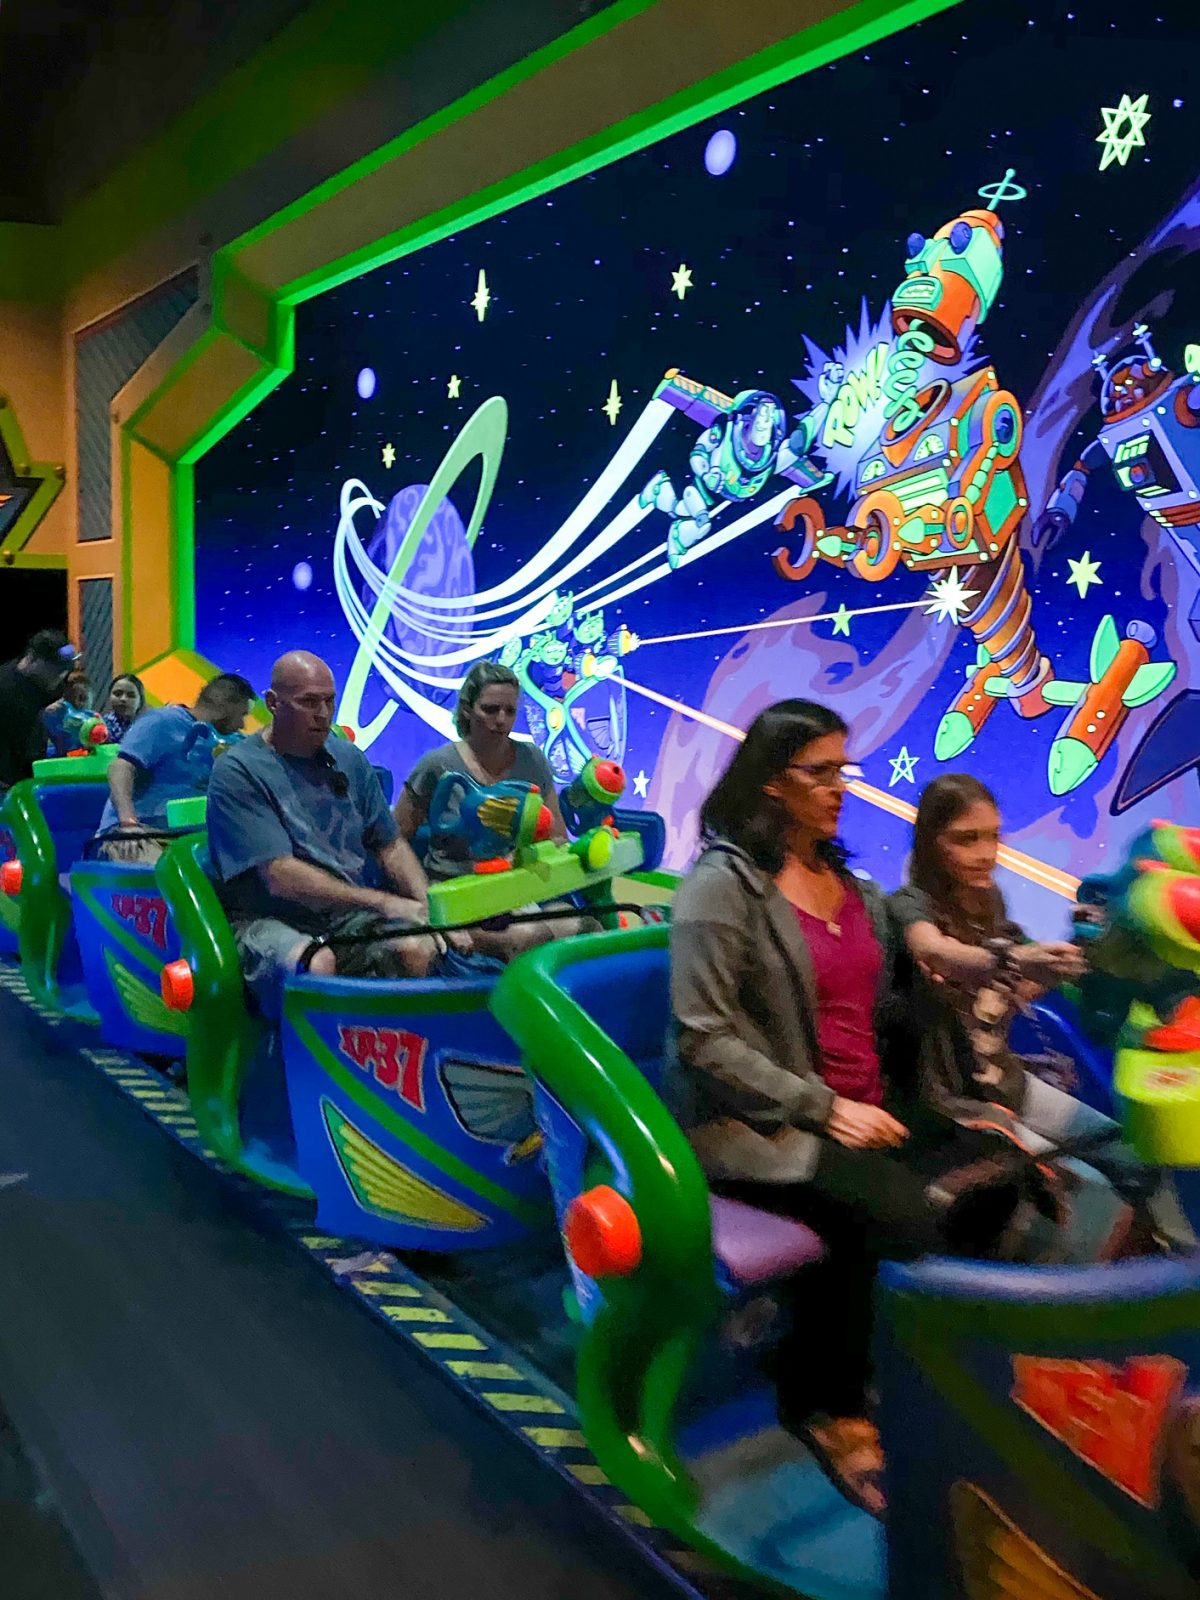 people on Buzz Lightyear ride getting ready to go